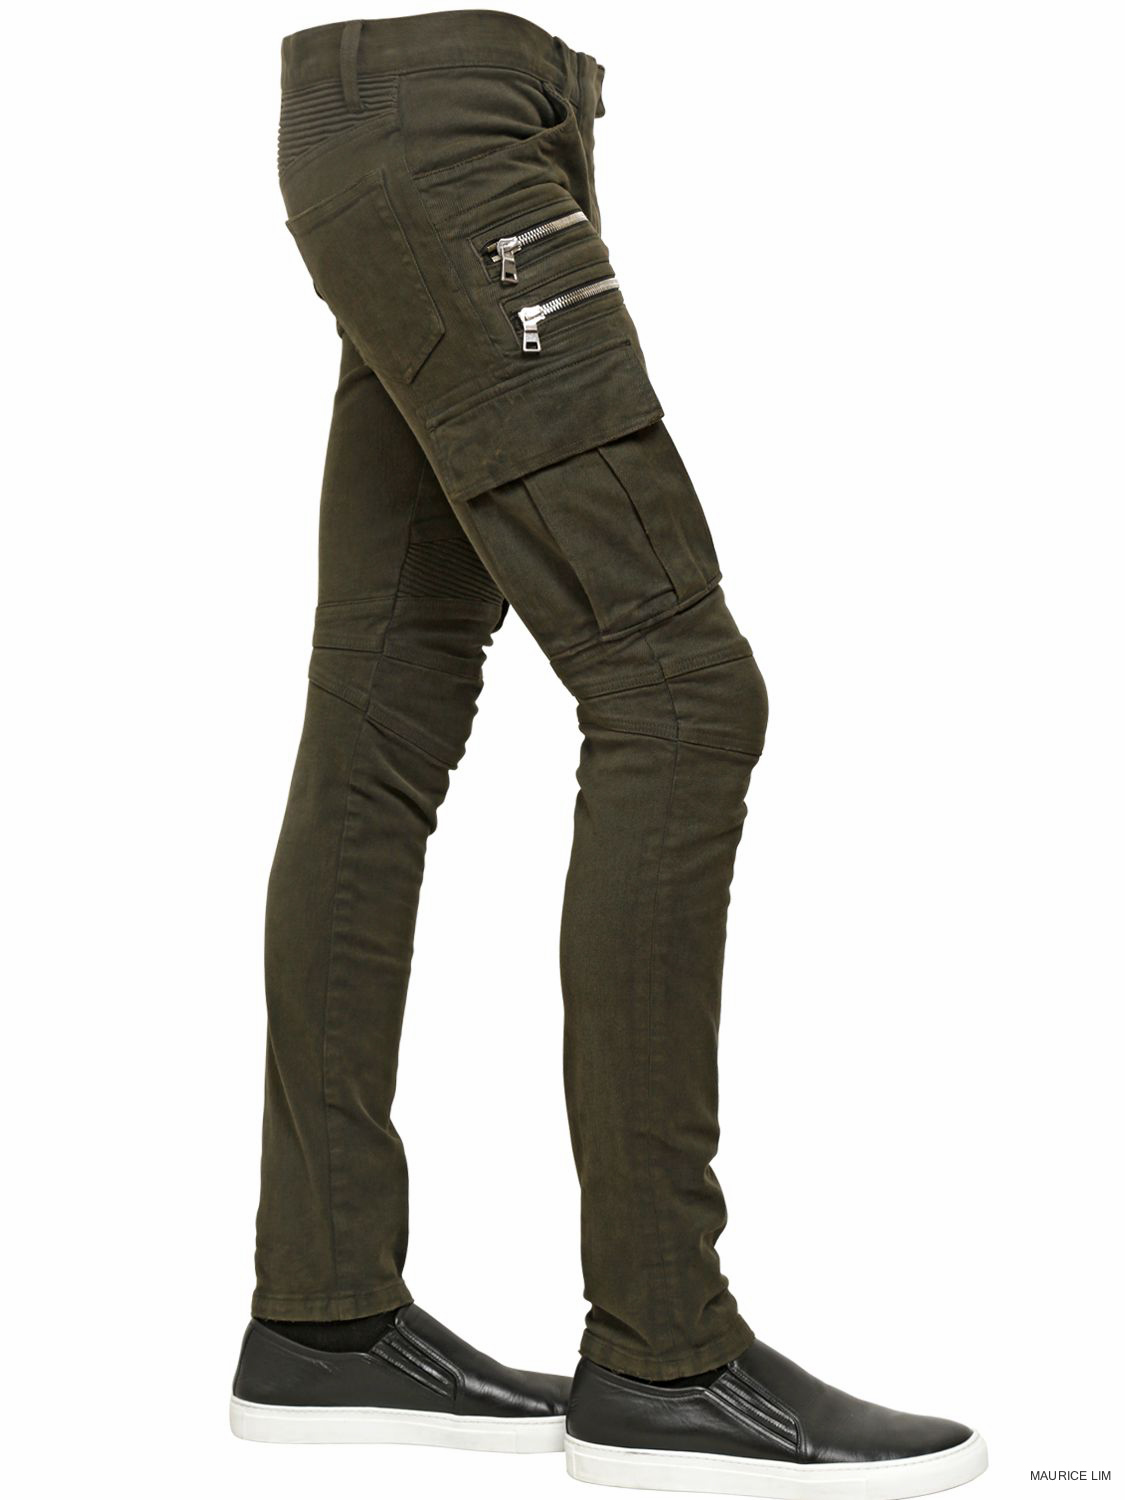 cd999375 BALMAIN 16.5CM BLACK WAXED COATED COTTON CARGO BIKER JEANS Matches Fashion  $1,291 — BUY IT NOW Farfetch $1,317 — BUY IT NOW SSENSE $1,600 —BUY IT NOW